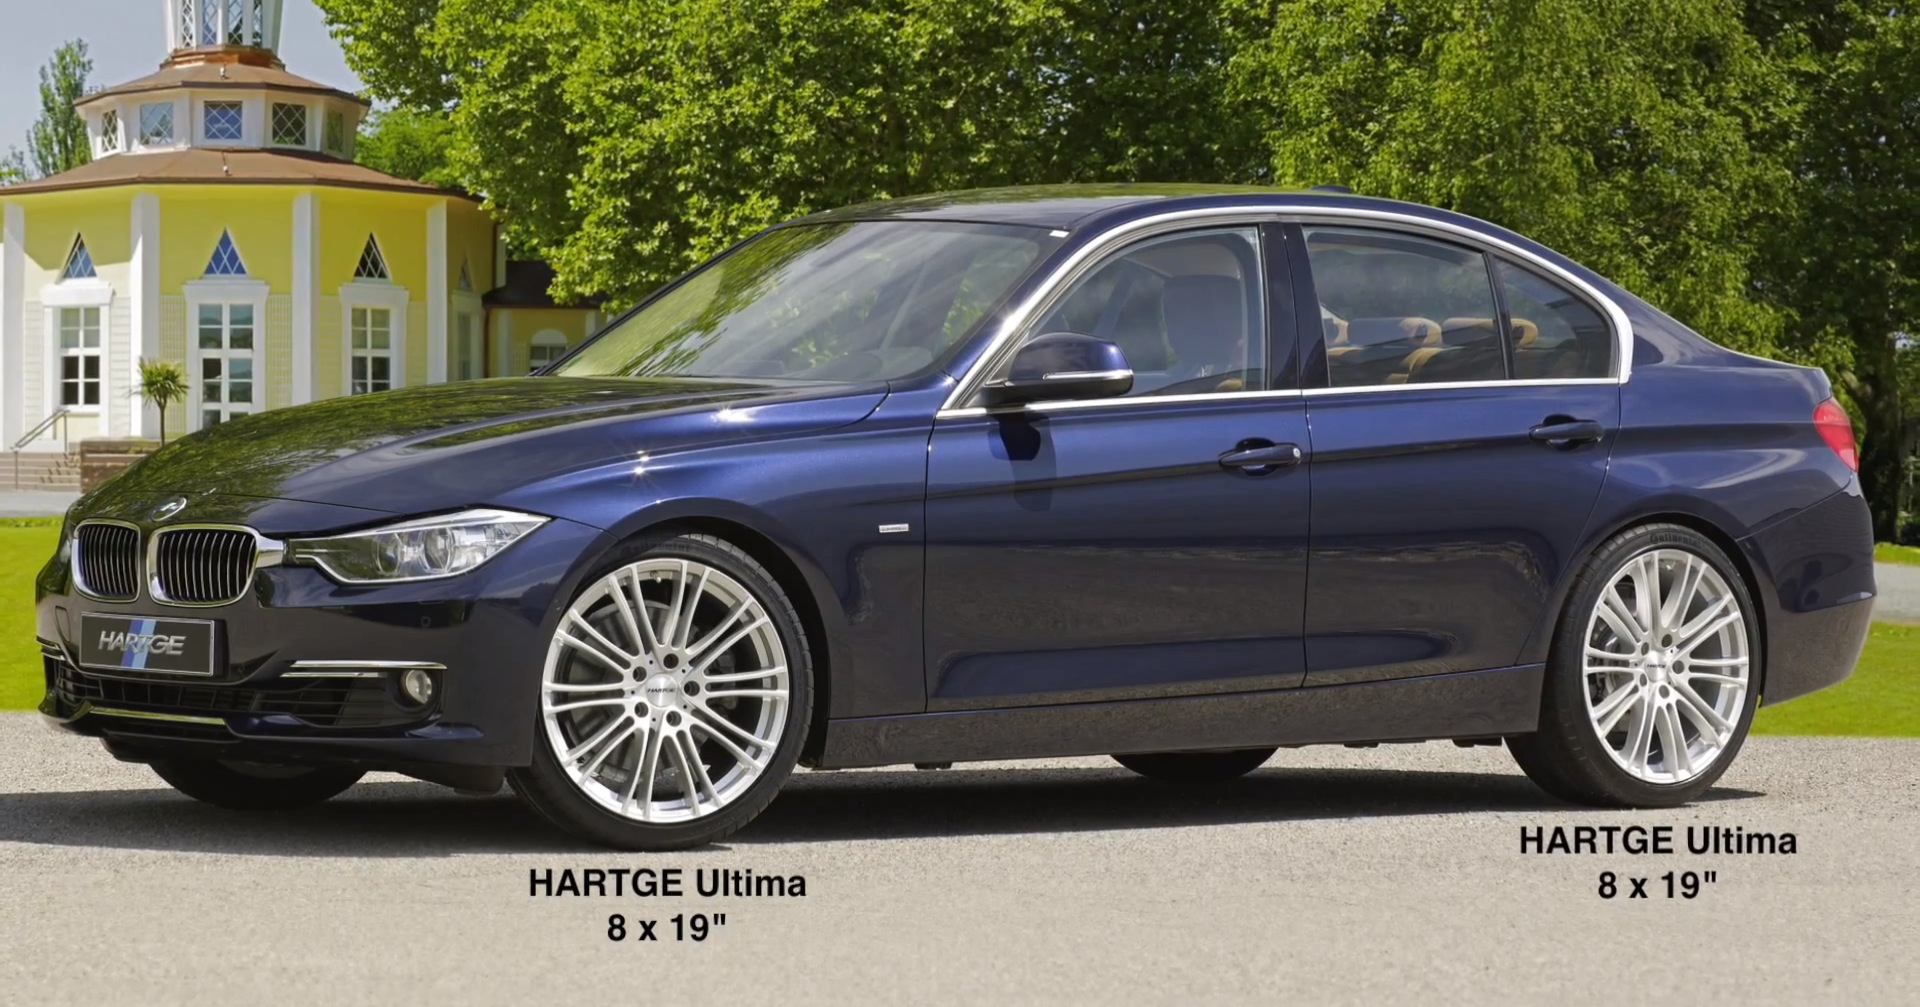 Hartge S 362 Hp Bmw 335d Xdrive Is Dangerously Fast